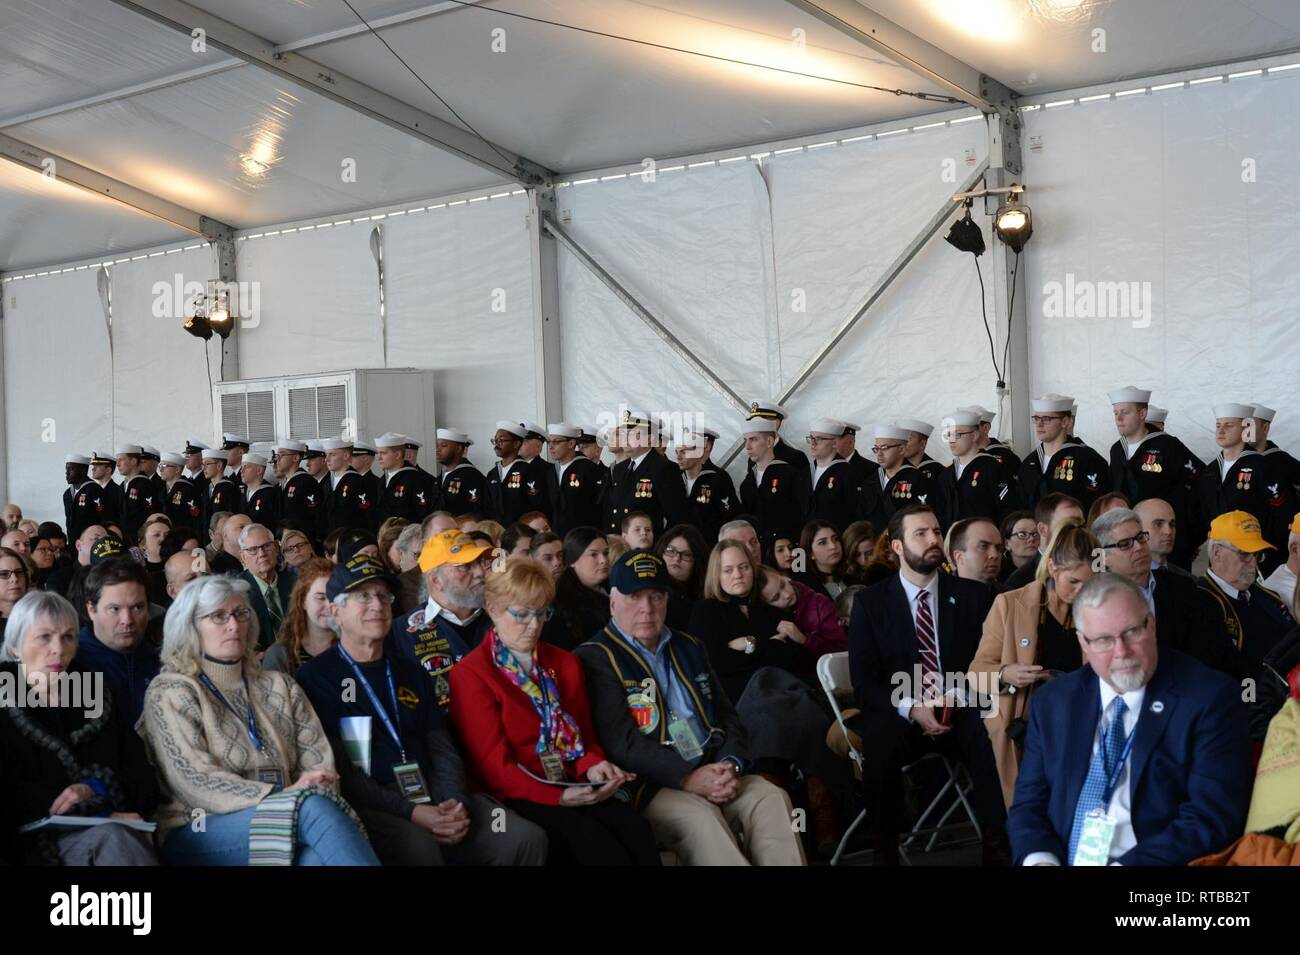 Groton Conn Feb 2 2019 Sailors Stand In Formation During The